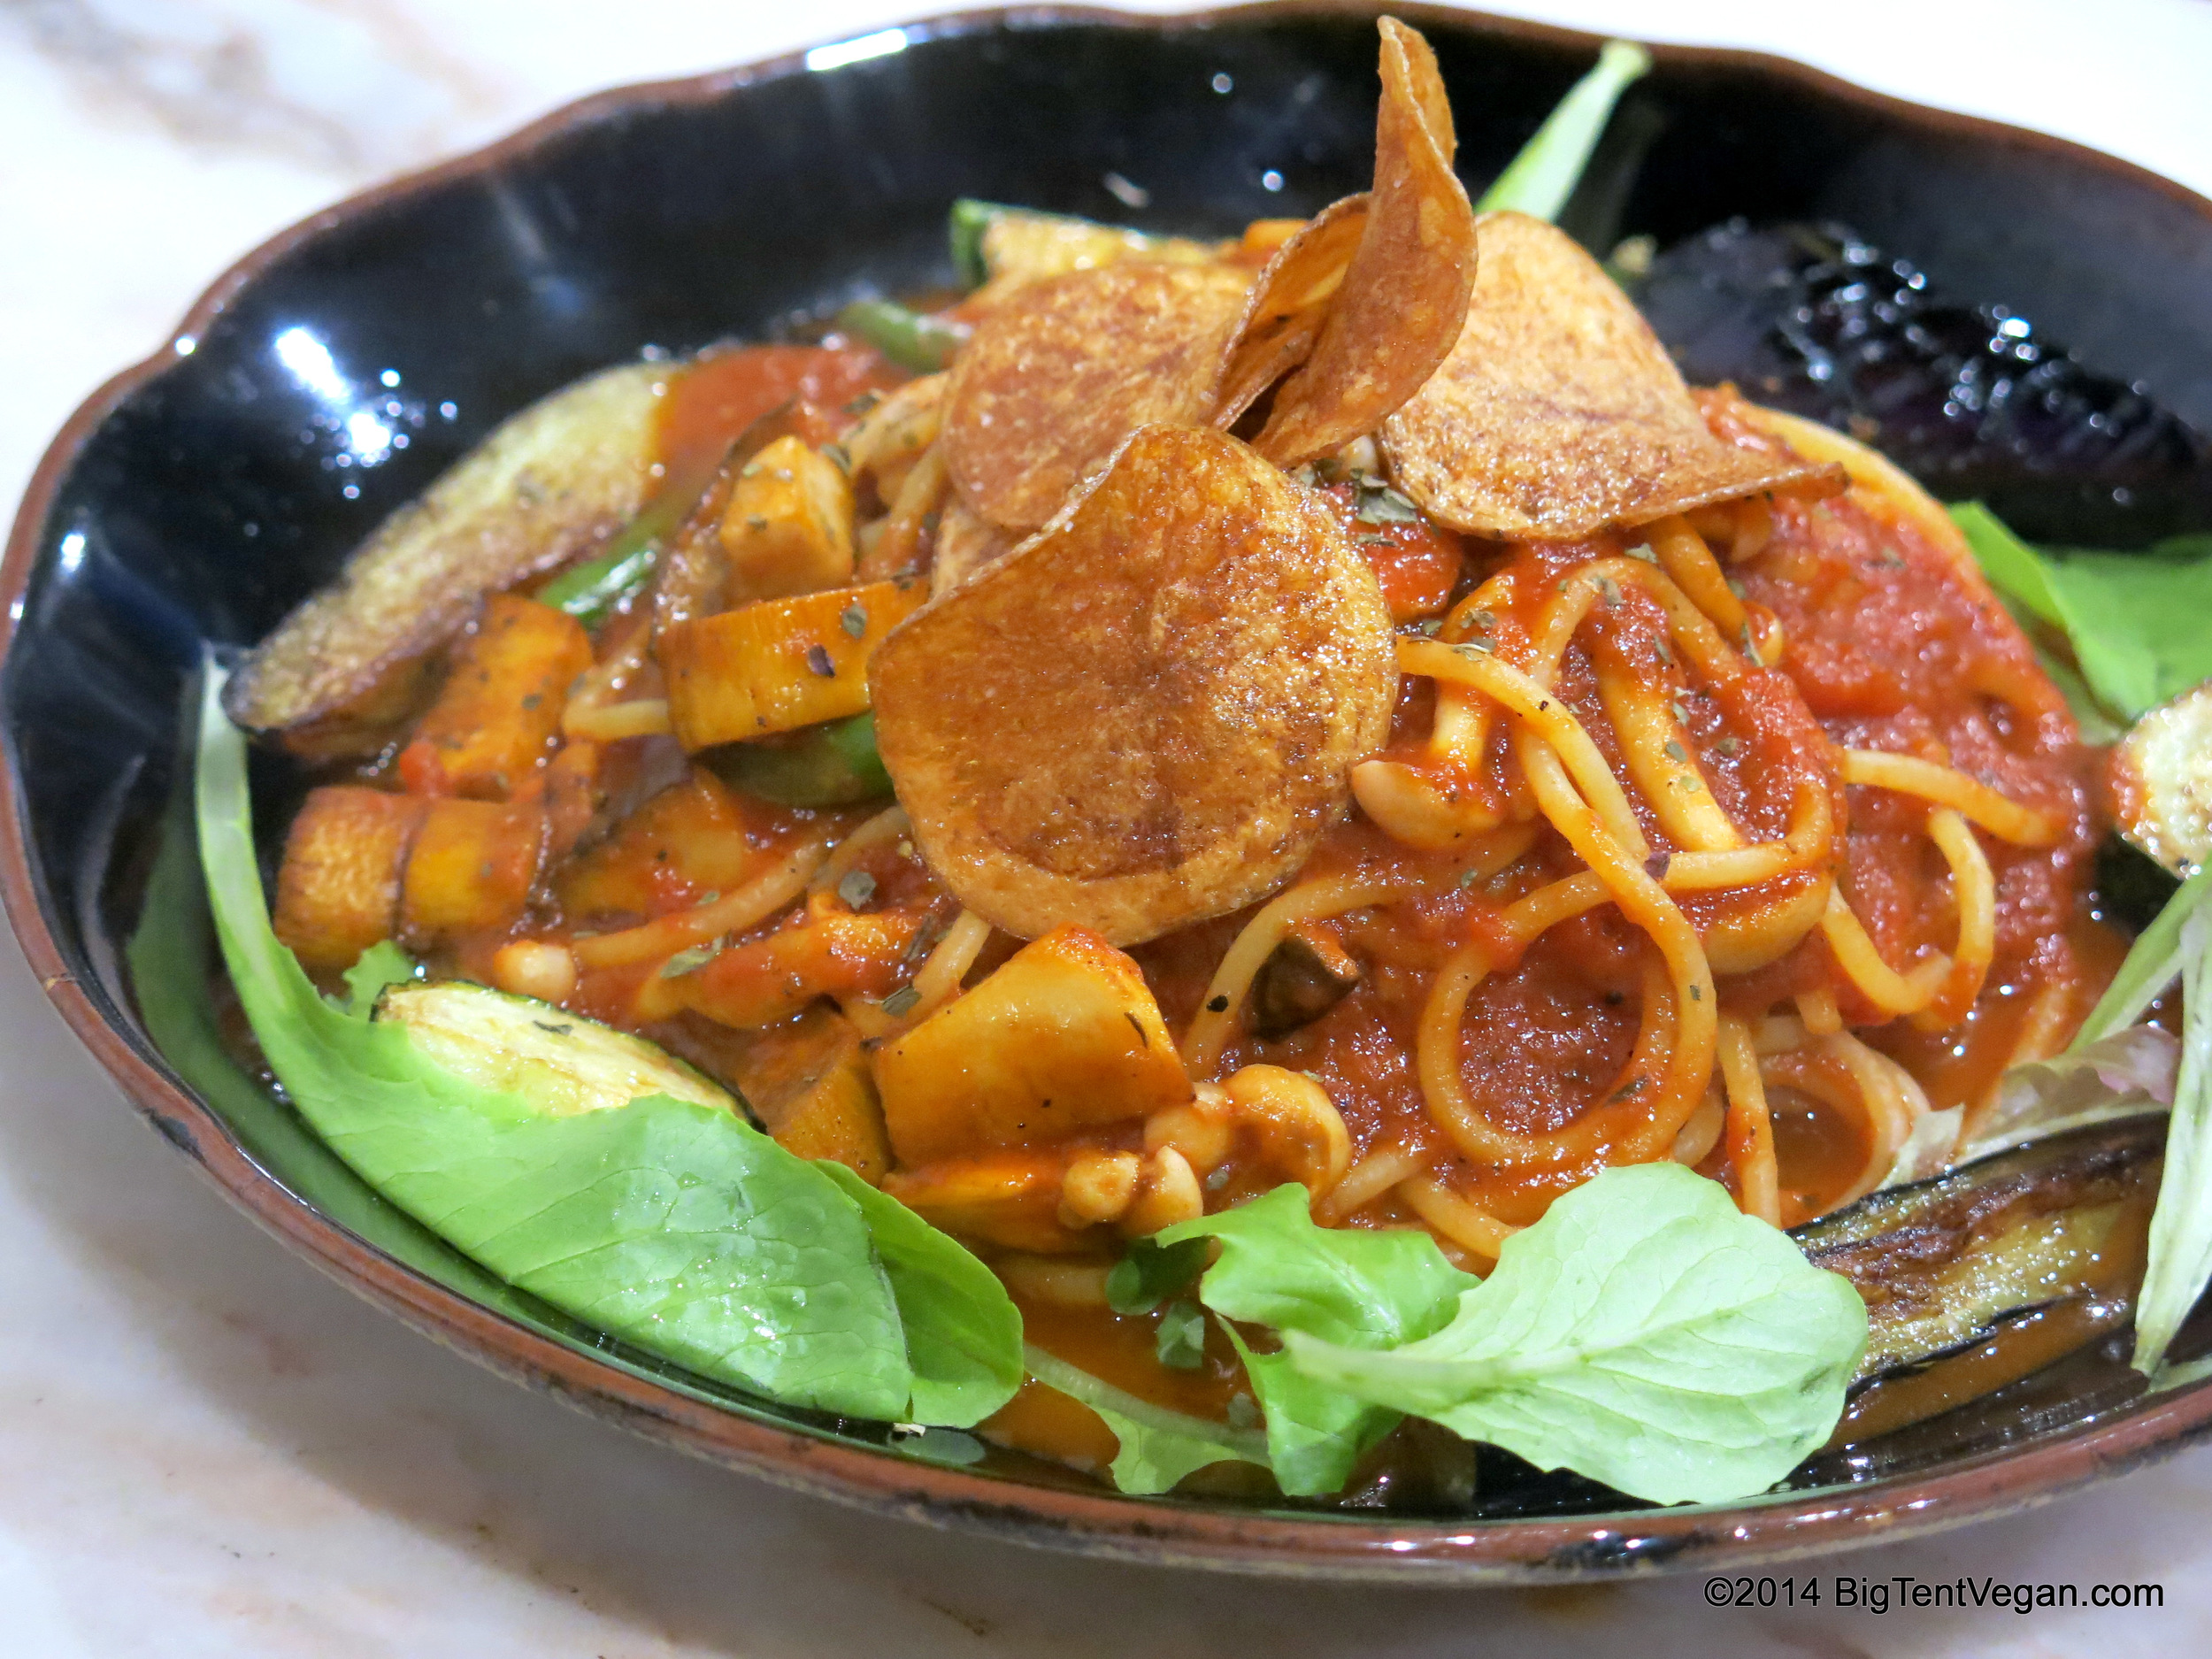 """Tomato Sauce Pasta with Enoki Mushrooms and Eggplant at Vegans Caf       12.00       é       Normal   0           false   false   false     EN-US   X-NONE   X-NONE                                        MicrosoftInternetExplorer4                                                                                                                                                                                                                                                                                                                                            /* Style Definitions */  table.MsoNormalTable {mso-style-name:""""Table Normal""""; mso-tstyle-rowband-size:0; mso-tstyle-colband-size:0; mso-style-noshow:yes; mso-style-priority:99; mso-style-qformat:yes; mso-style-parent:""""""""; mso-padding-alt:0in 5.4pt 0in 5.4pt; mso-para-margin-top:0in; mso-para-margin-right:0in; mso-para-margin-bottom:10.0pt; mso-para-margin-left:0in; line-height:115%; mso-pagination:widow-orphan; font-size:11.0pt; font-family:""""Calibri"""",""""sans-serif""""; mso-ascii-font-family:Calibri; mso-ascii-theme-font:minor-latin; mso-fareast-font-family:""""Times New Roman""""; mso-fareast-theme-font:minor-fareast; mso-hansi-font-family:Calibri; mso-hansi-theme-font:minor-latin;}     and Restaurant (100% vegan restaurant in Kyoto, Japan)"""